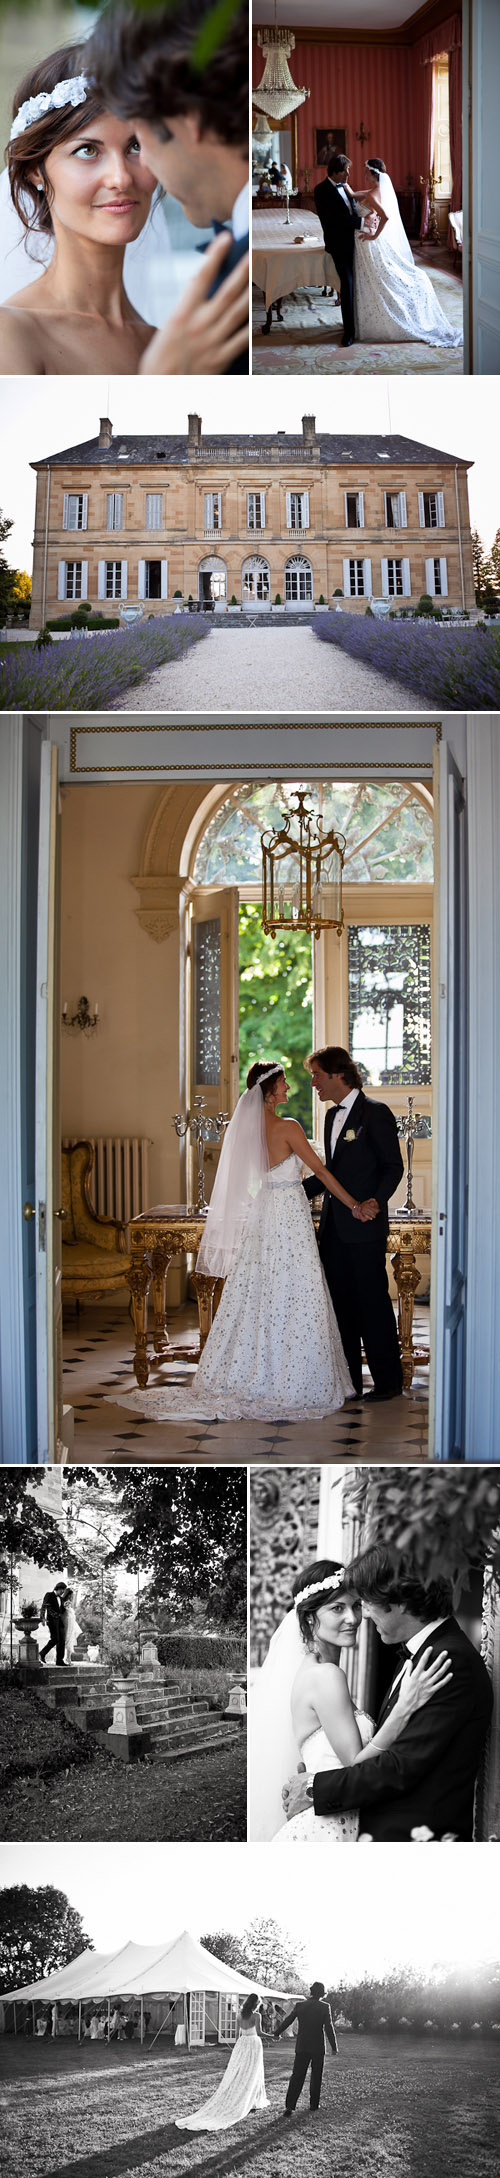 real wedding at Chateau la Durantie, Lanouaille, Dordogne, photography by One and Only Paris